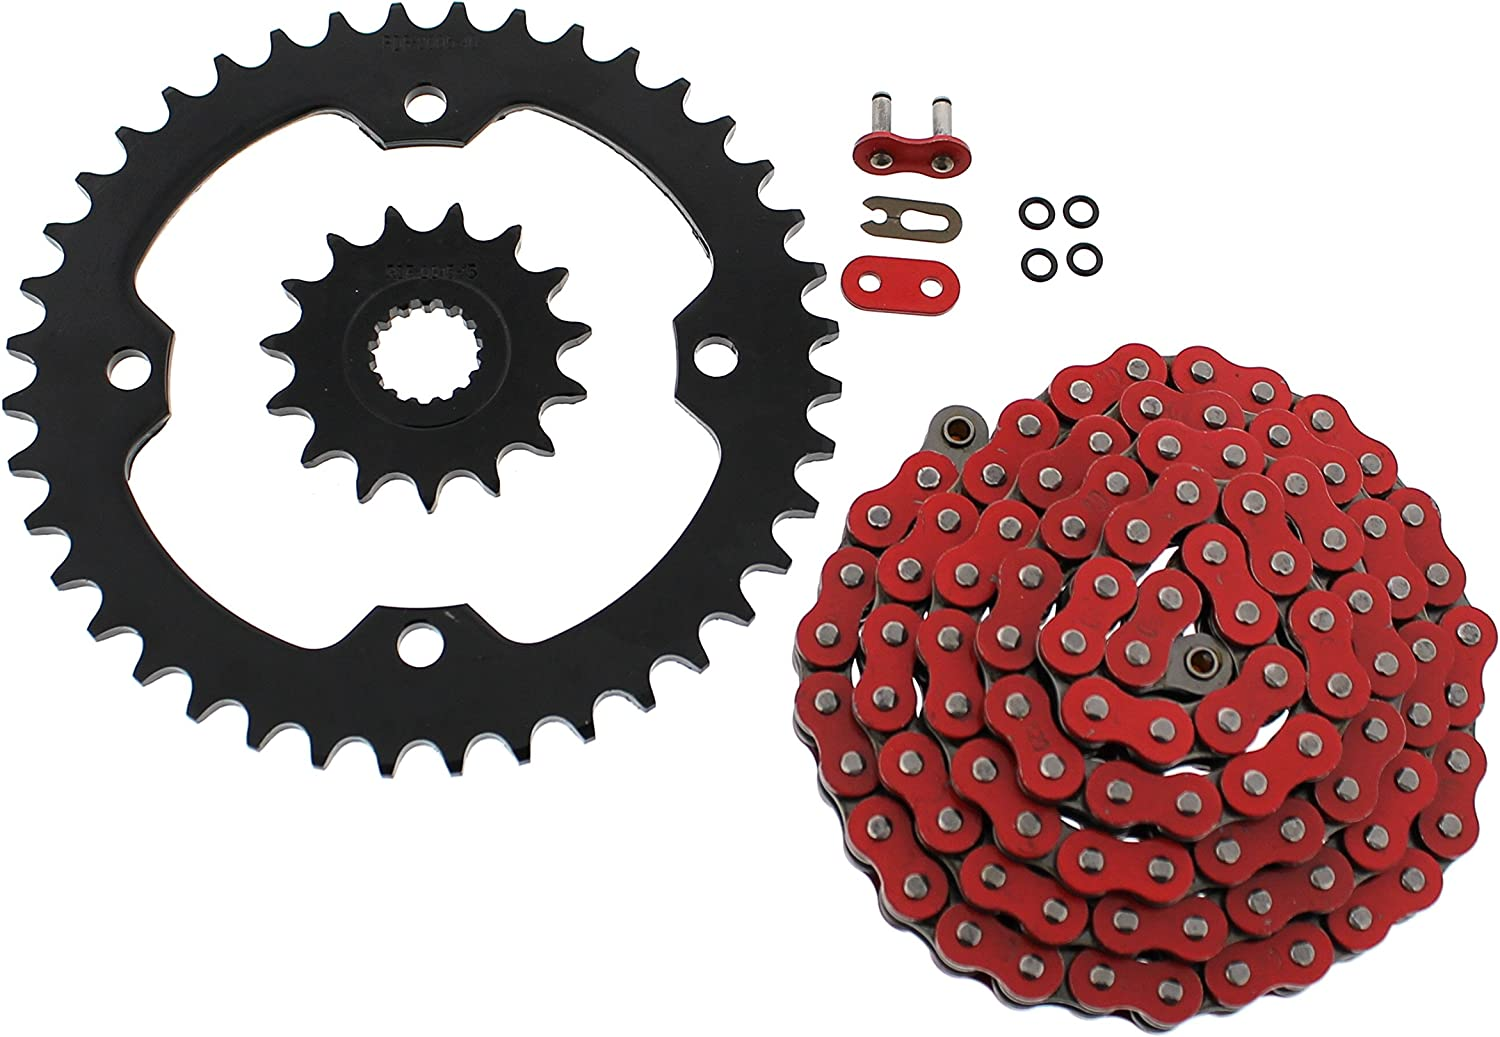 2009-2013 fits Yamaha YFZ450R YFZ 5% OFF 450R Over item handling Sp O-Ring Chain Black Red